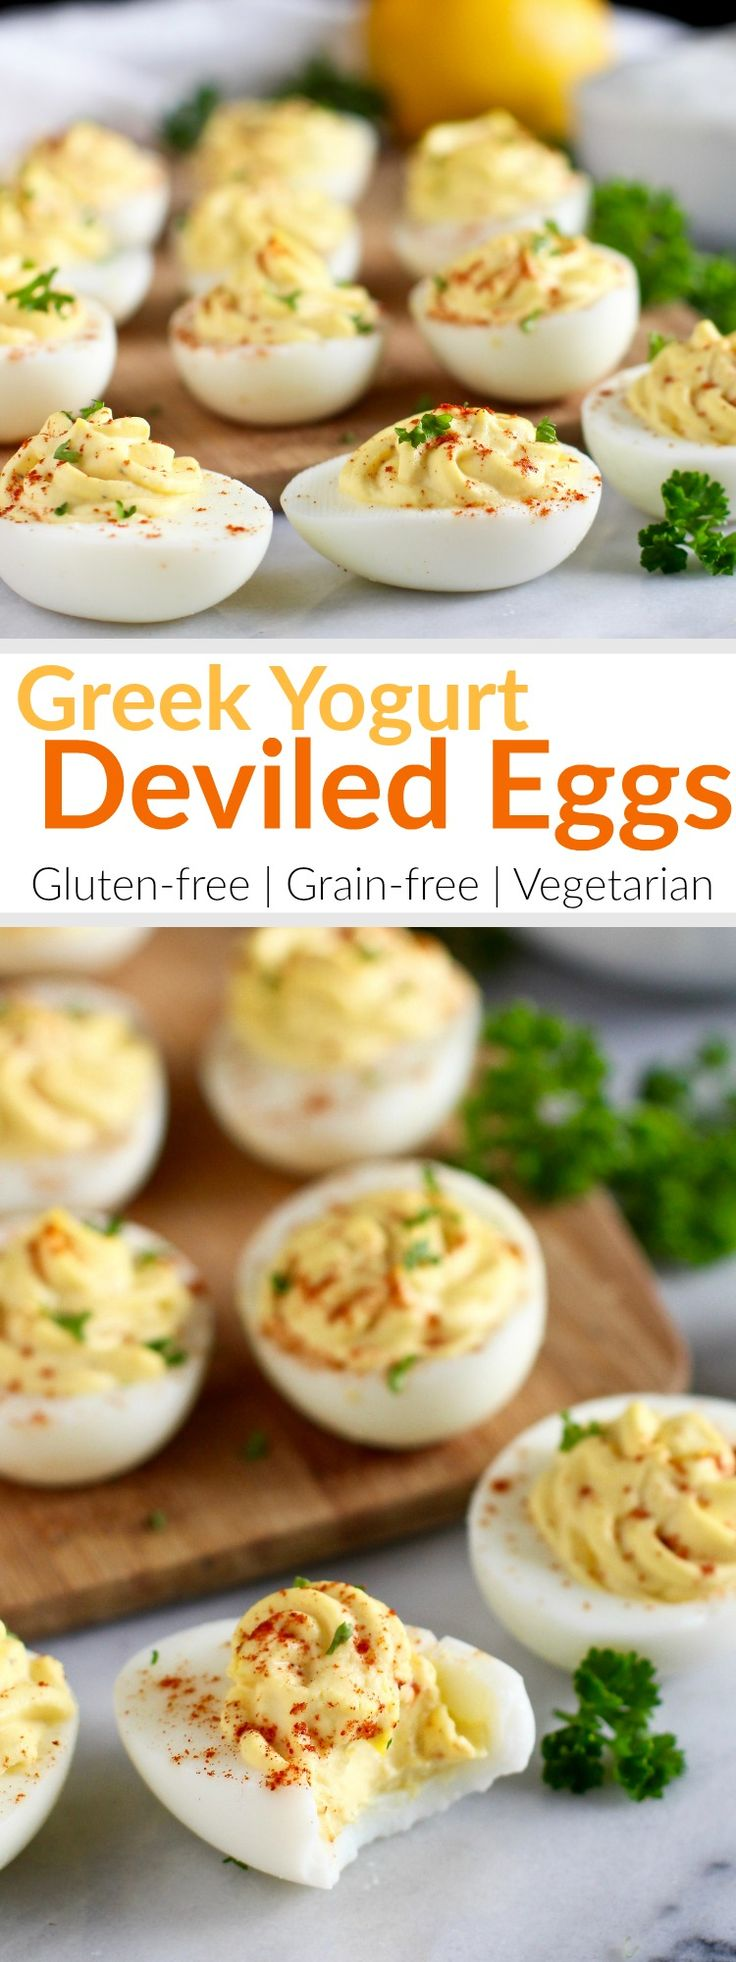 Tangy and thick Greek yogurt takes the place of mayo in our Greek Yogurt Deviled Eggs which consists of just 5 simple ingredients. | Gluten-free | Vegetarian | http://therealfoodrds.com/greek-yogurt-deviled-eggs/